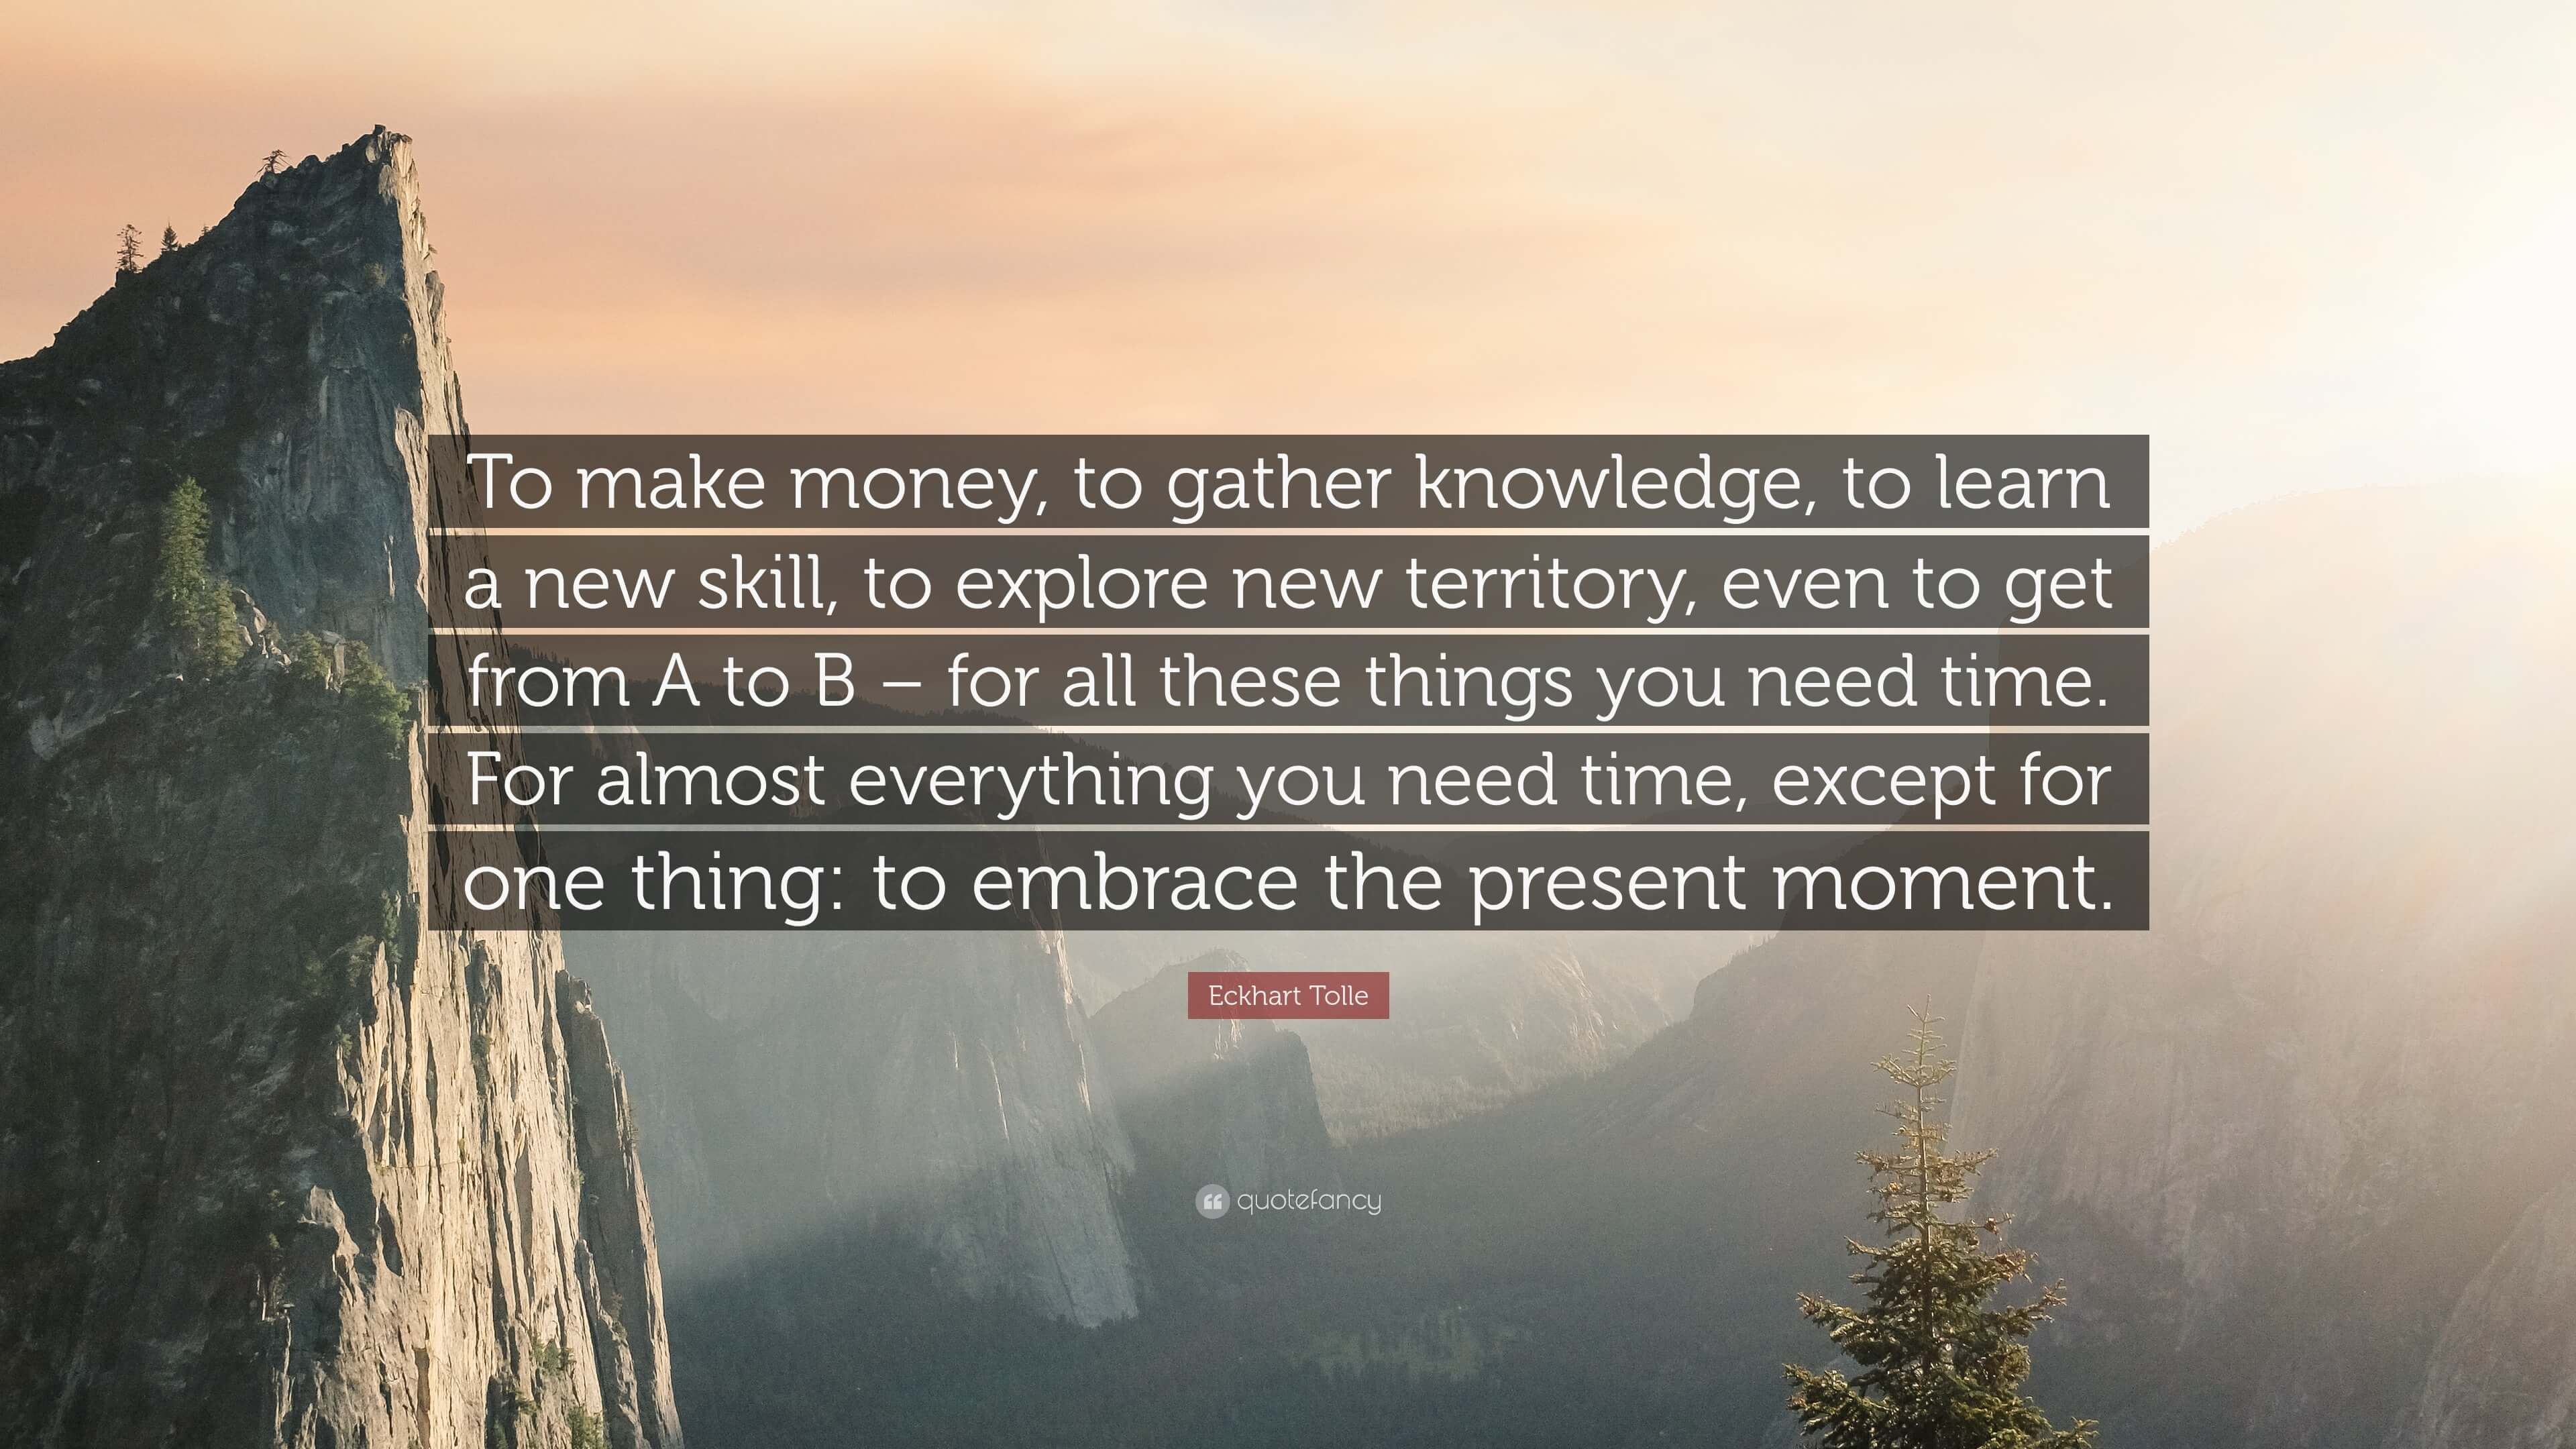 140111 Eckhart Tolle Quote To Make Money To Gather Knowledge